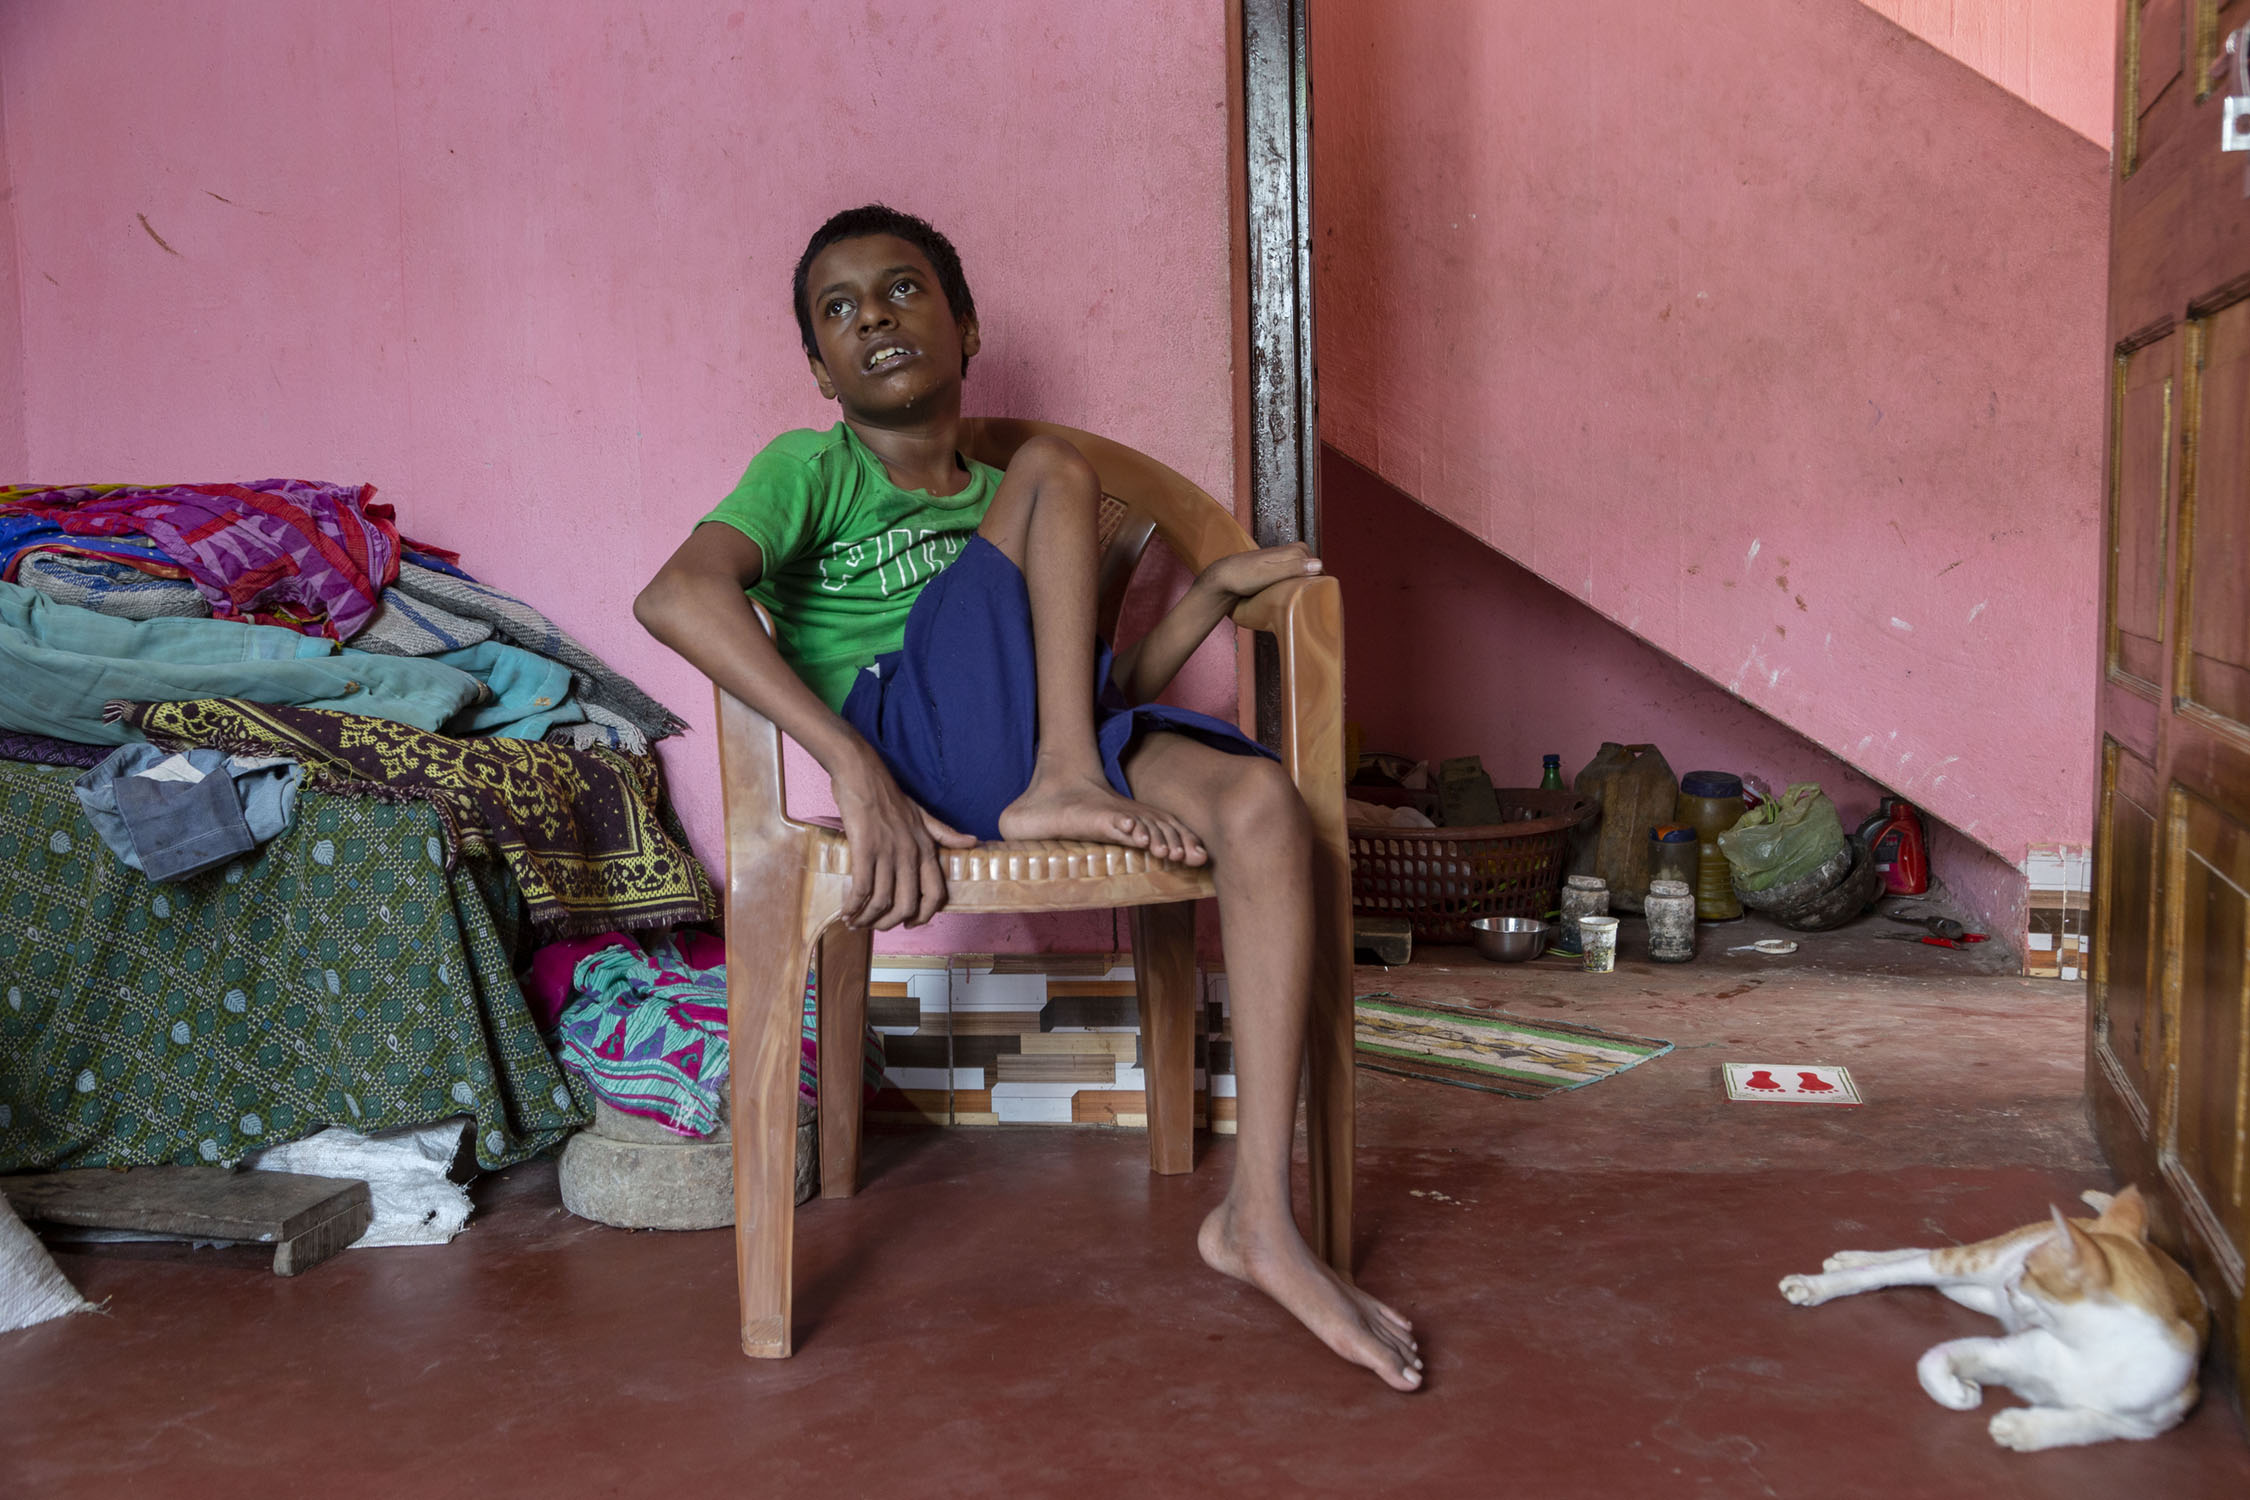 Asis Behera (14) wearing a green T-shirt and purple shorts sits in a light brown plastic chair. His left leg is extended and touches the floor. His right leg is folded at the knee and his right foot rests on the edge of the chair. To the right, a brown and white cat is lying on the floor next to an open door. The room has a red cement floor and bright pink walls.